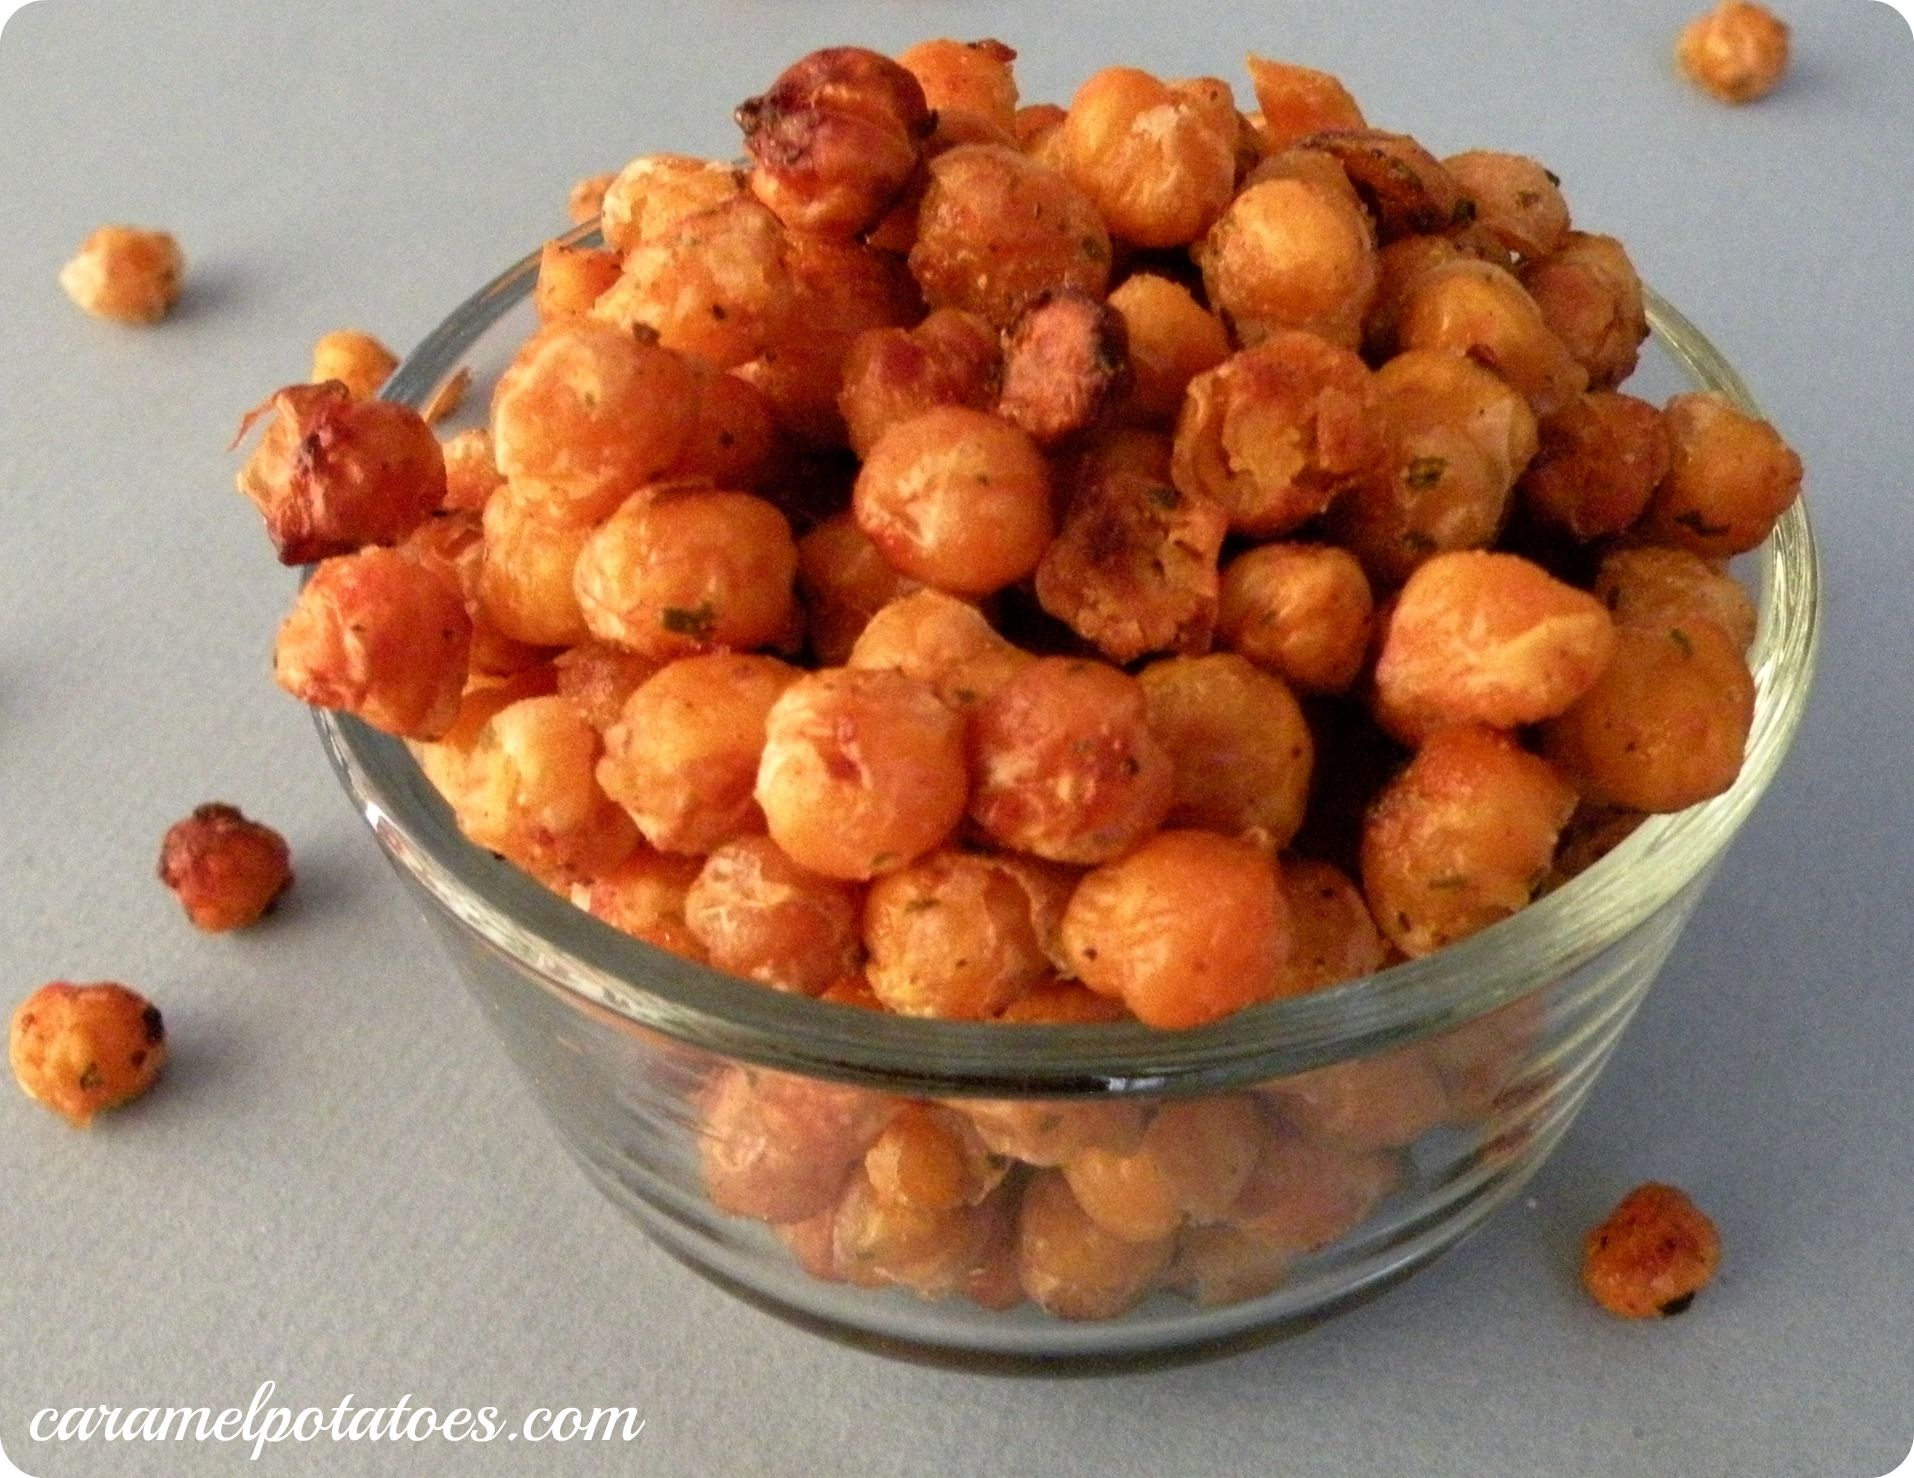 Crunchy Roasted Chickpeas-and inexpensive snack option that is full of protein, fiber and iron. Try them on their own or sprinkled in a salad.